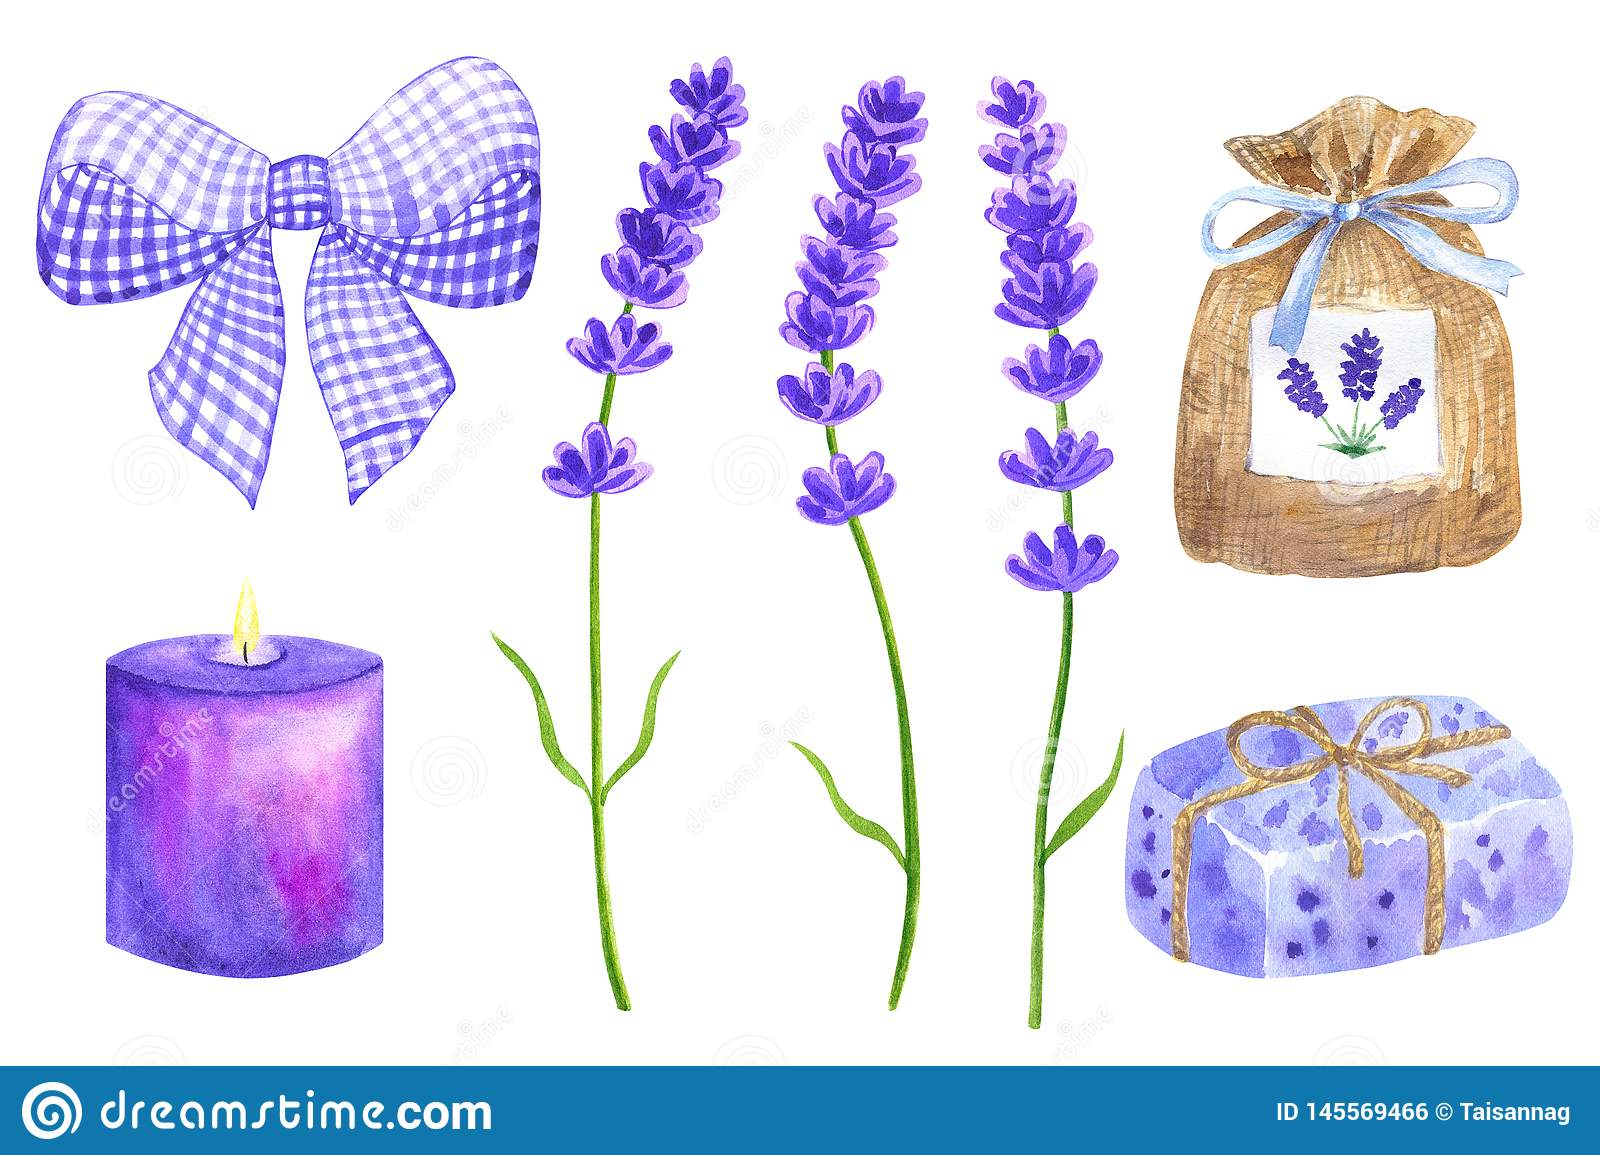 Lavender flowers. Elements for provence design. Violet bow, sachet, wrapped soap, burning candle. Hand drawn watercolor